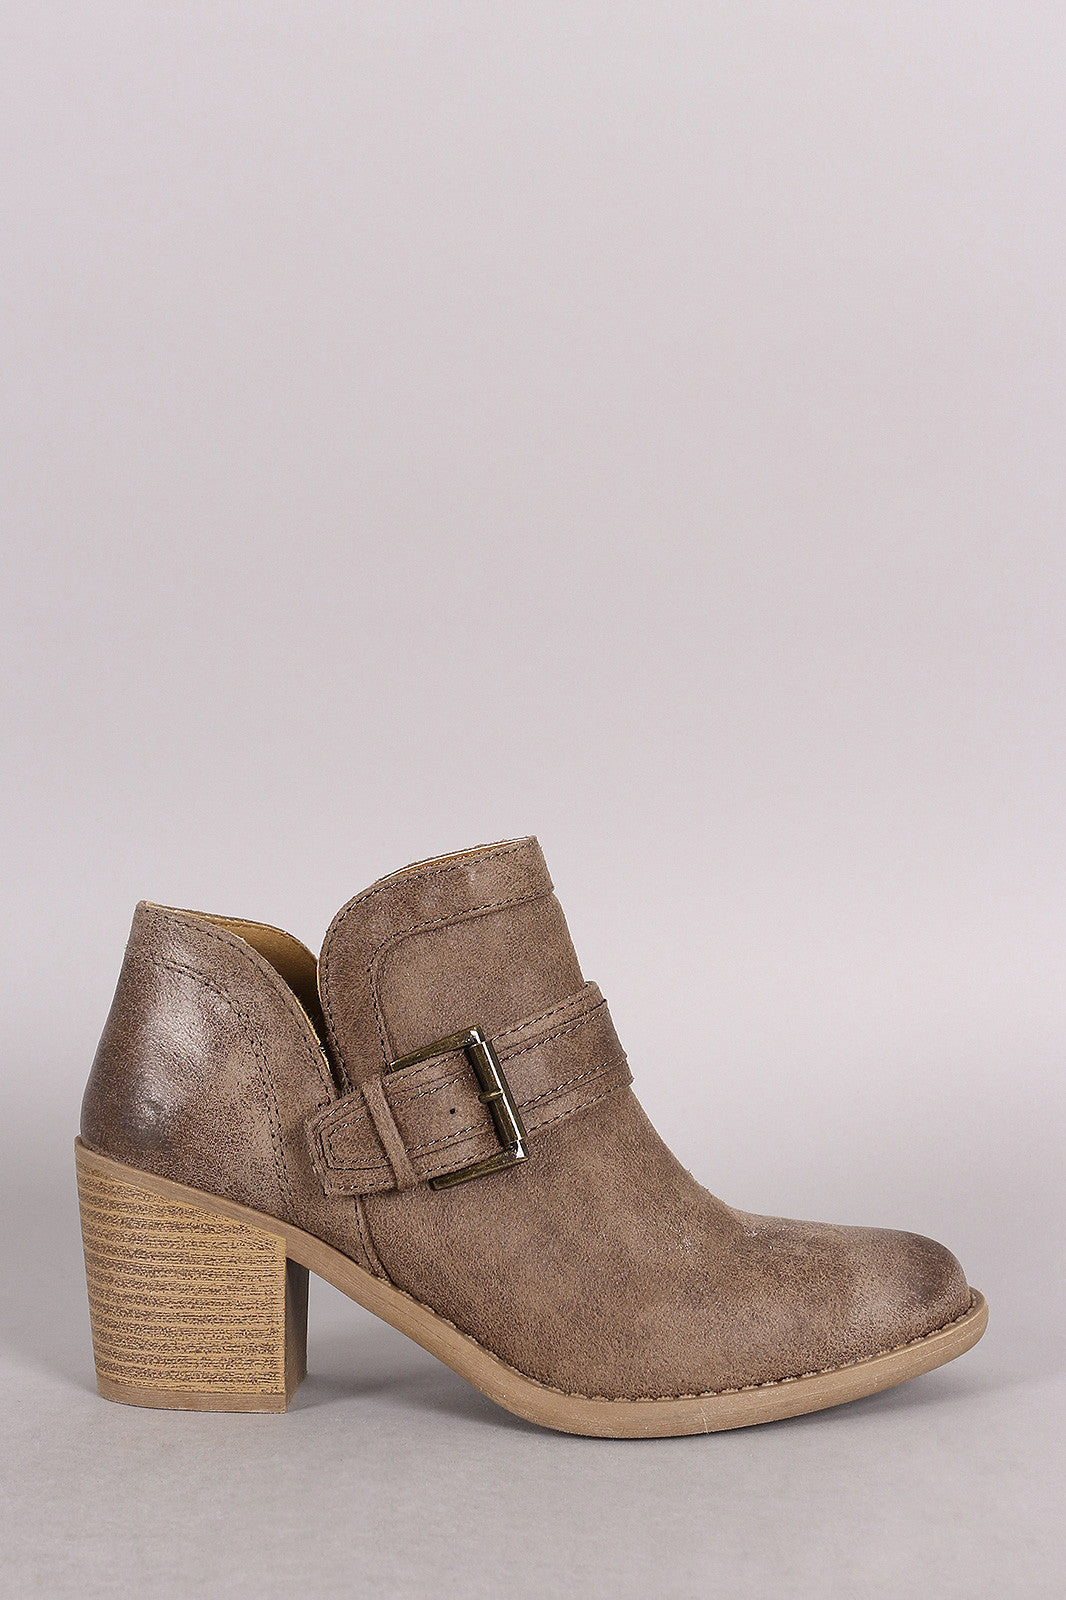 Qupid Buckled Cowgirl Chunky Heeled Booties - Thick 'N' Curvy Shop - 8